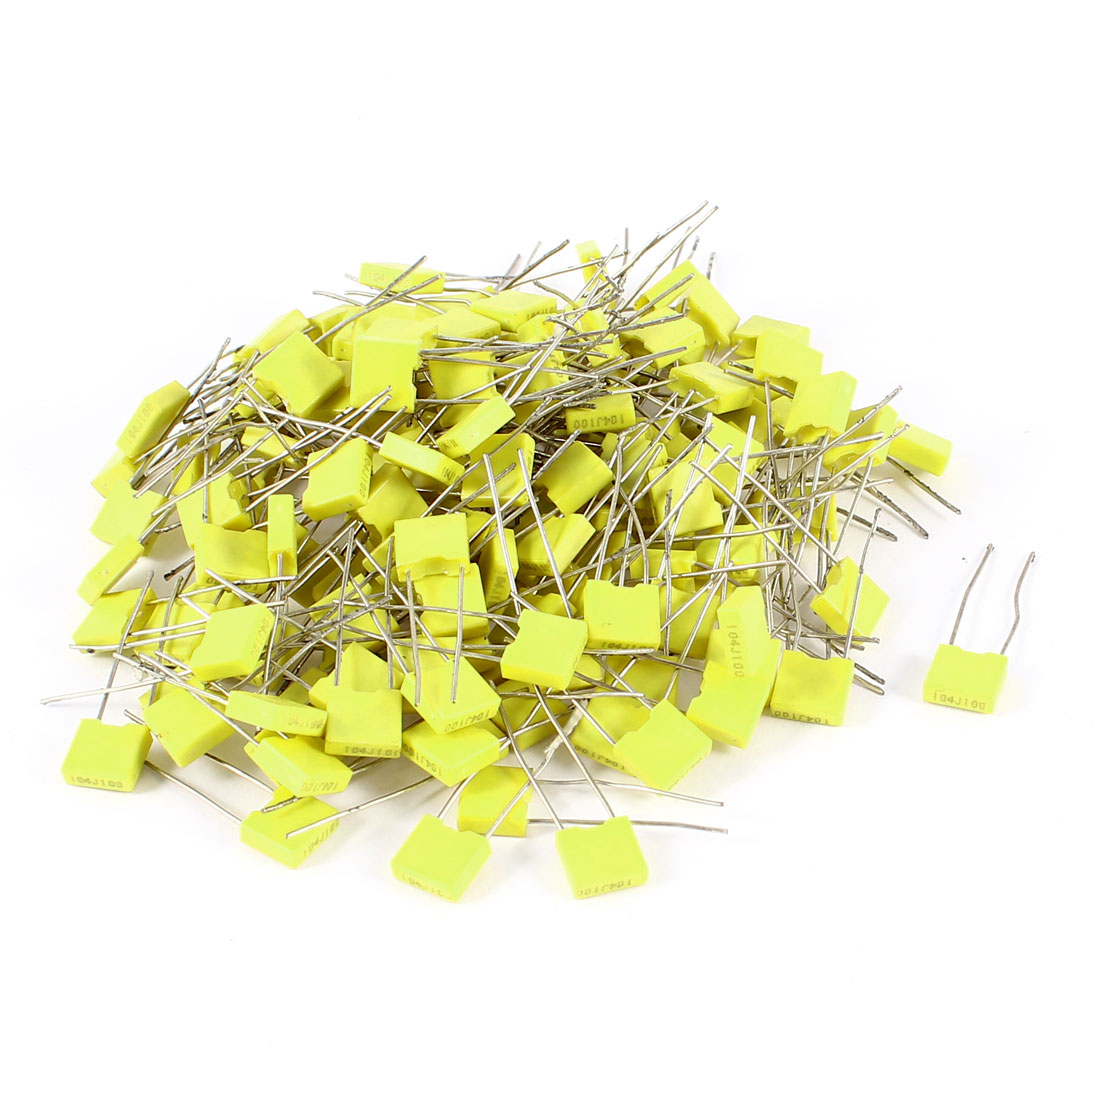 150 Pcs 100V 0.1uF 100NF Radial Lead Box Type Film Correction Capacitors Yellow